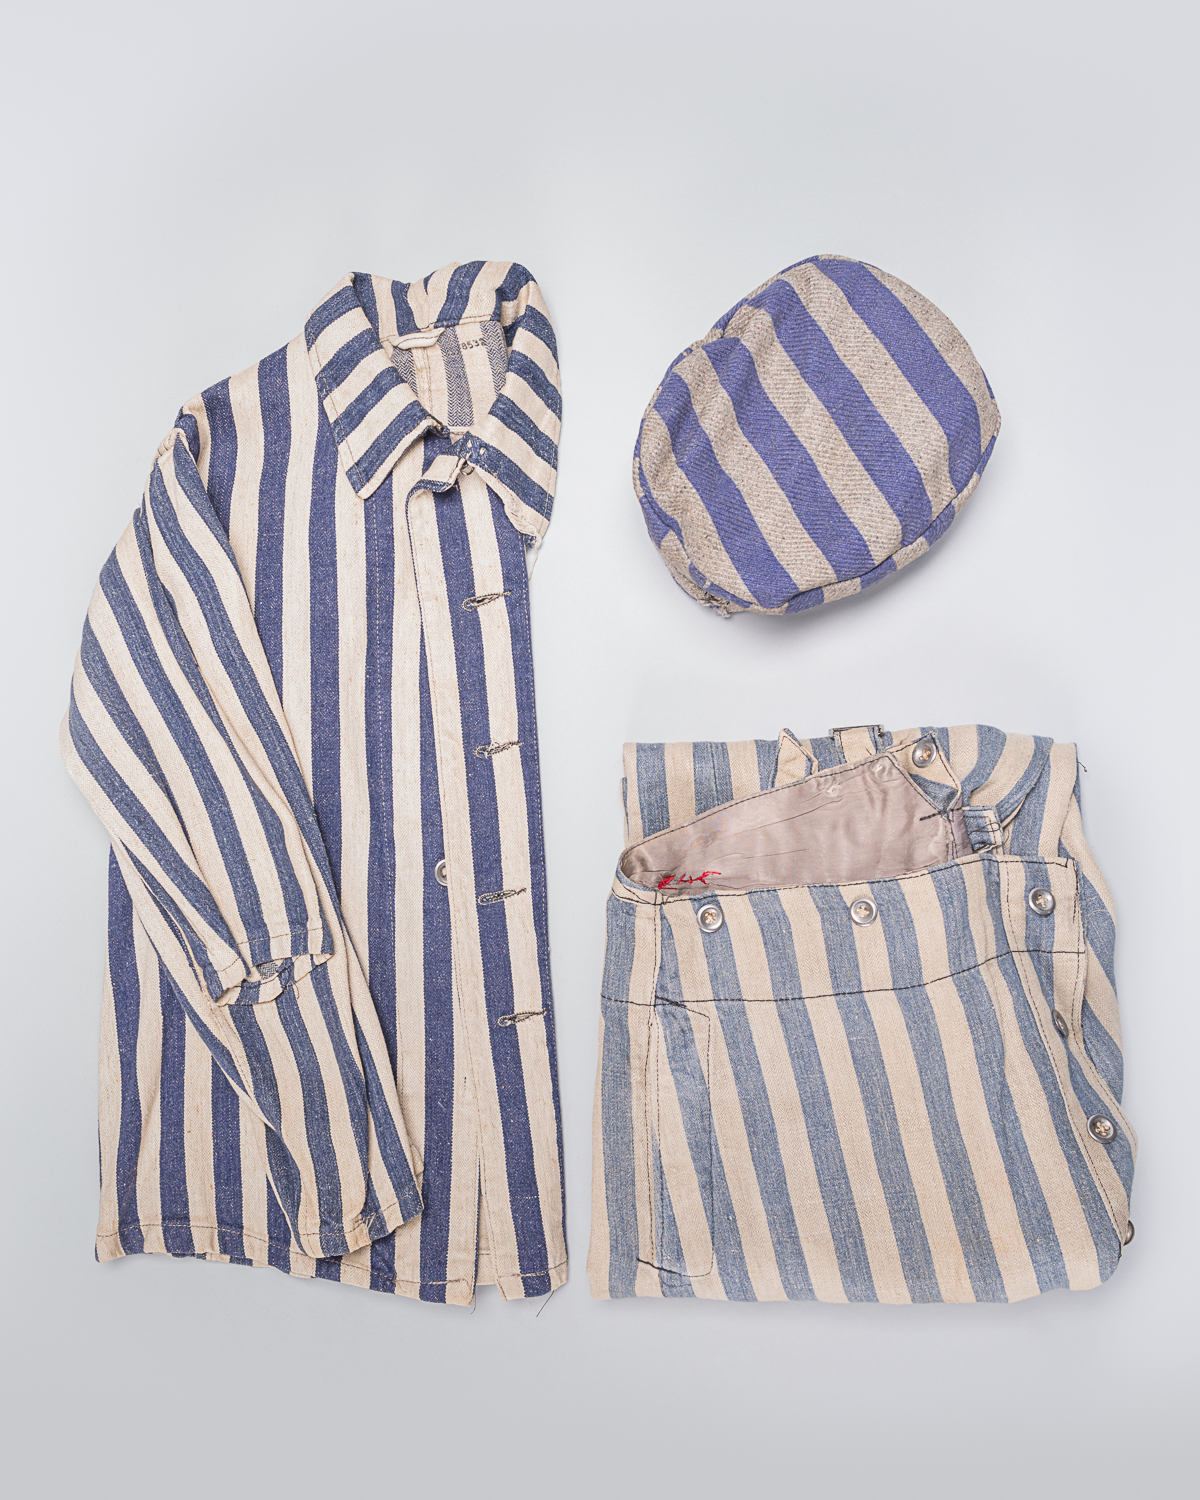 This 3-pieces uniform, easily identifiable by its blue and white vertical stripes, belonged to Louis Miller, a former prisoner of the Auschwitz-Birkenau concentration camp. (Photo: Peter Berra)